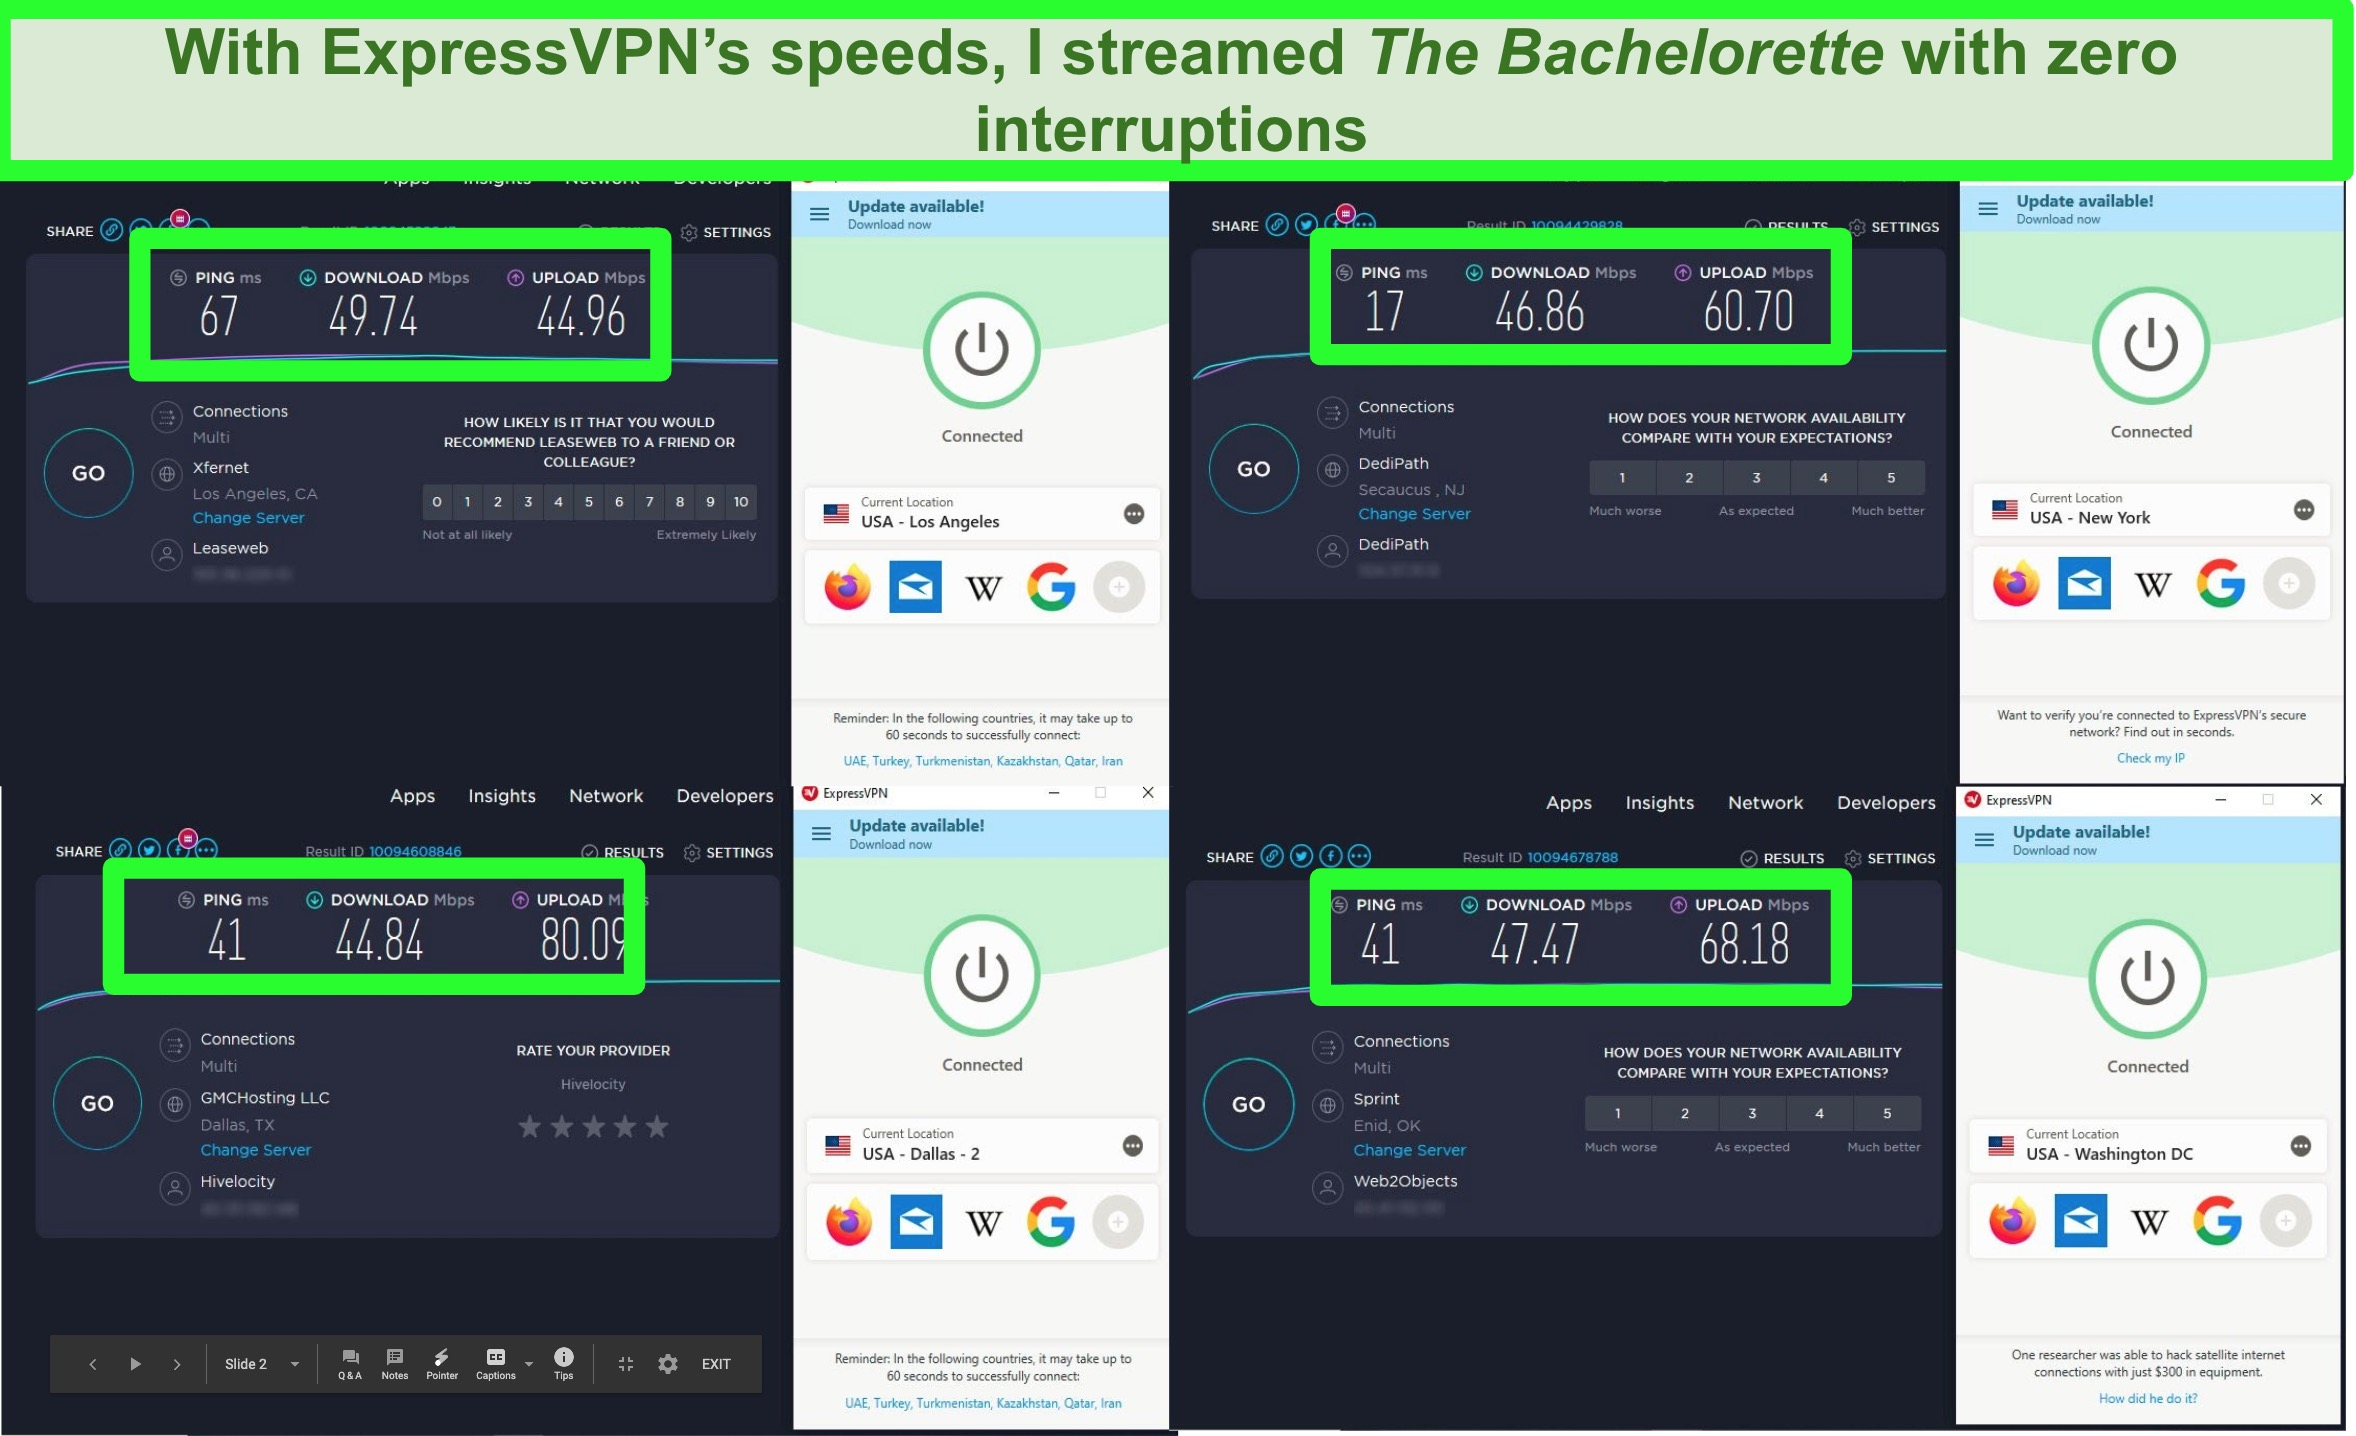 Screenshot of speed tests while connected to ExpressVPN